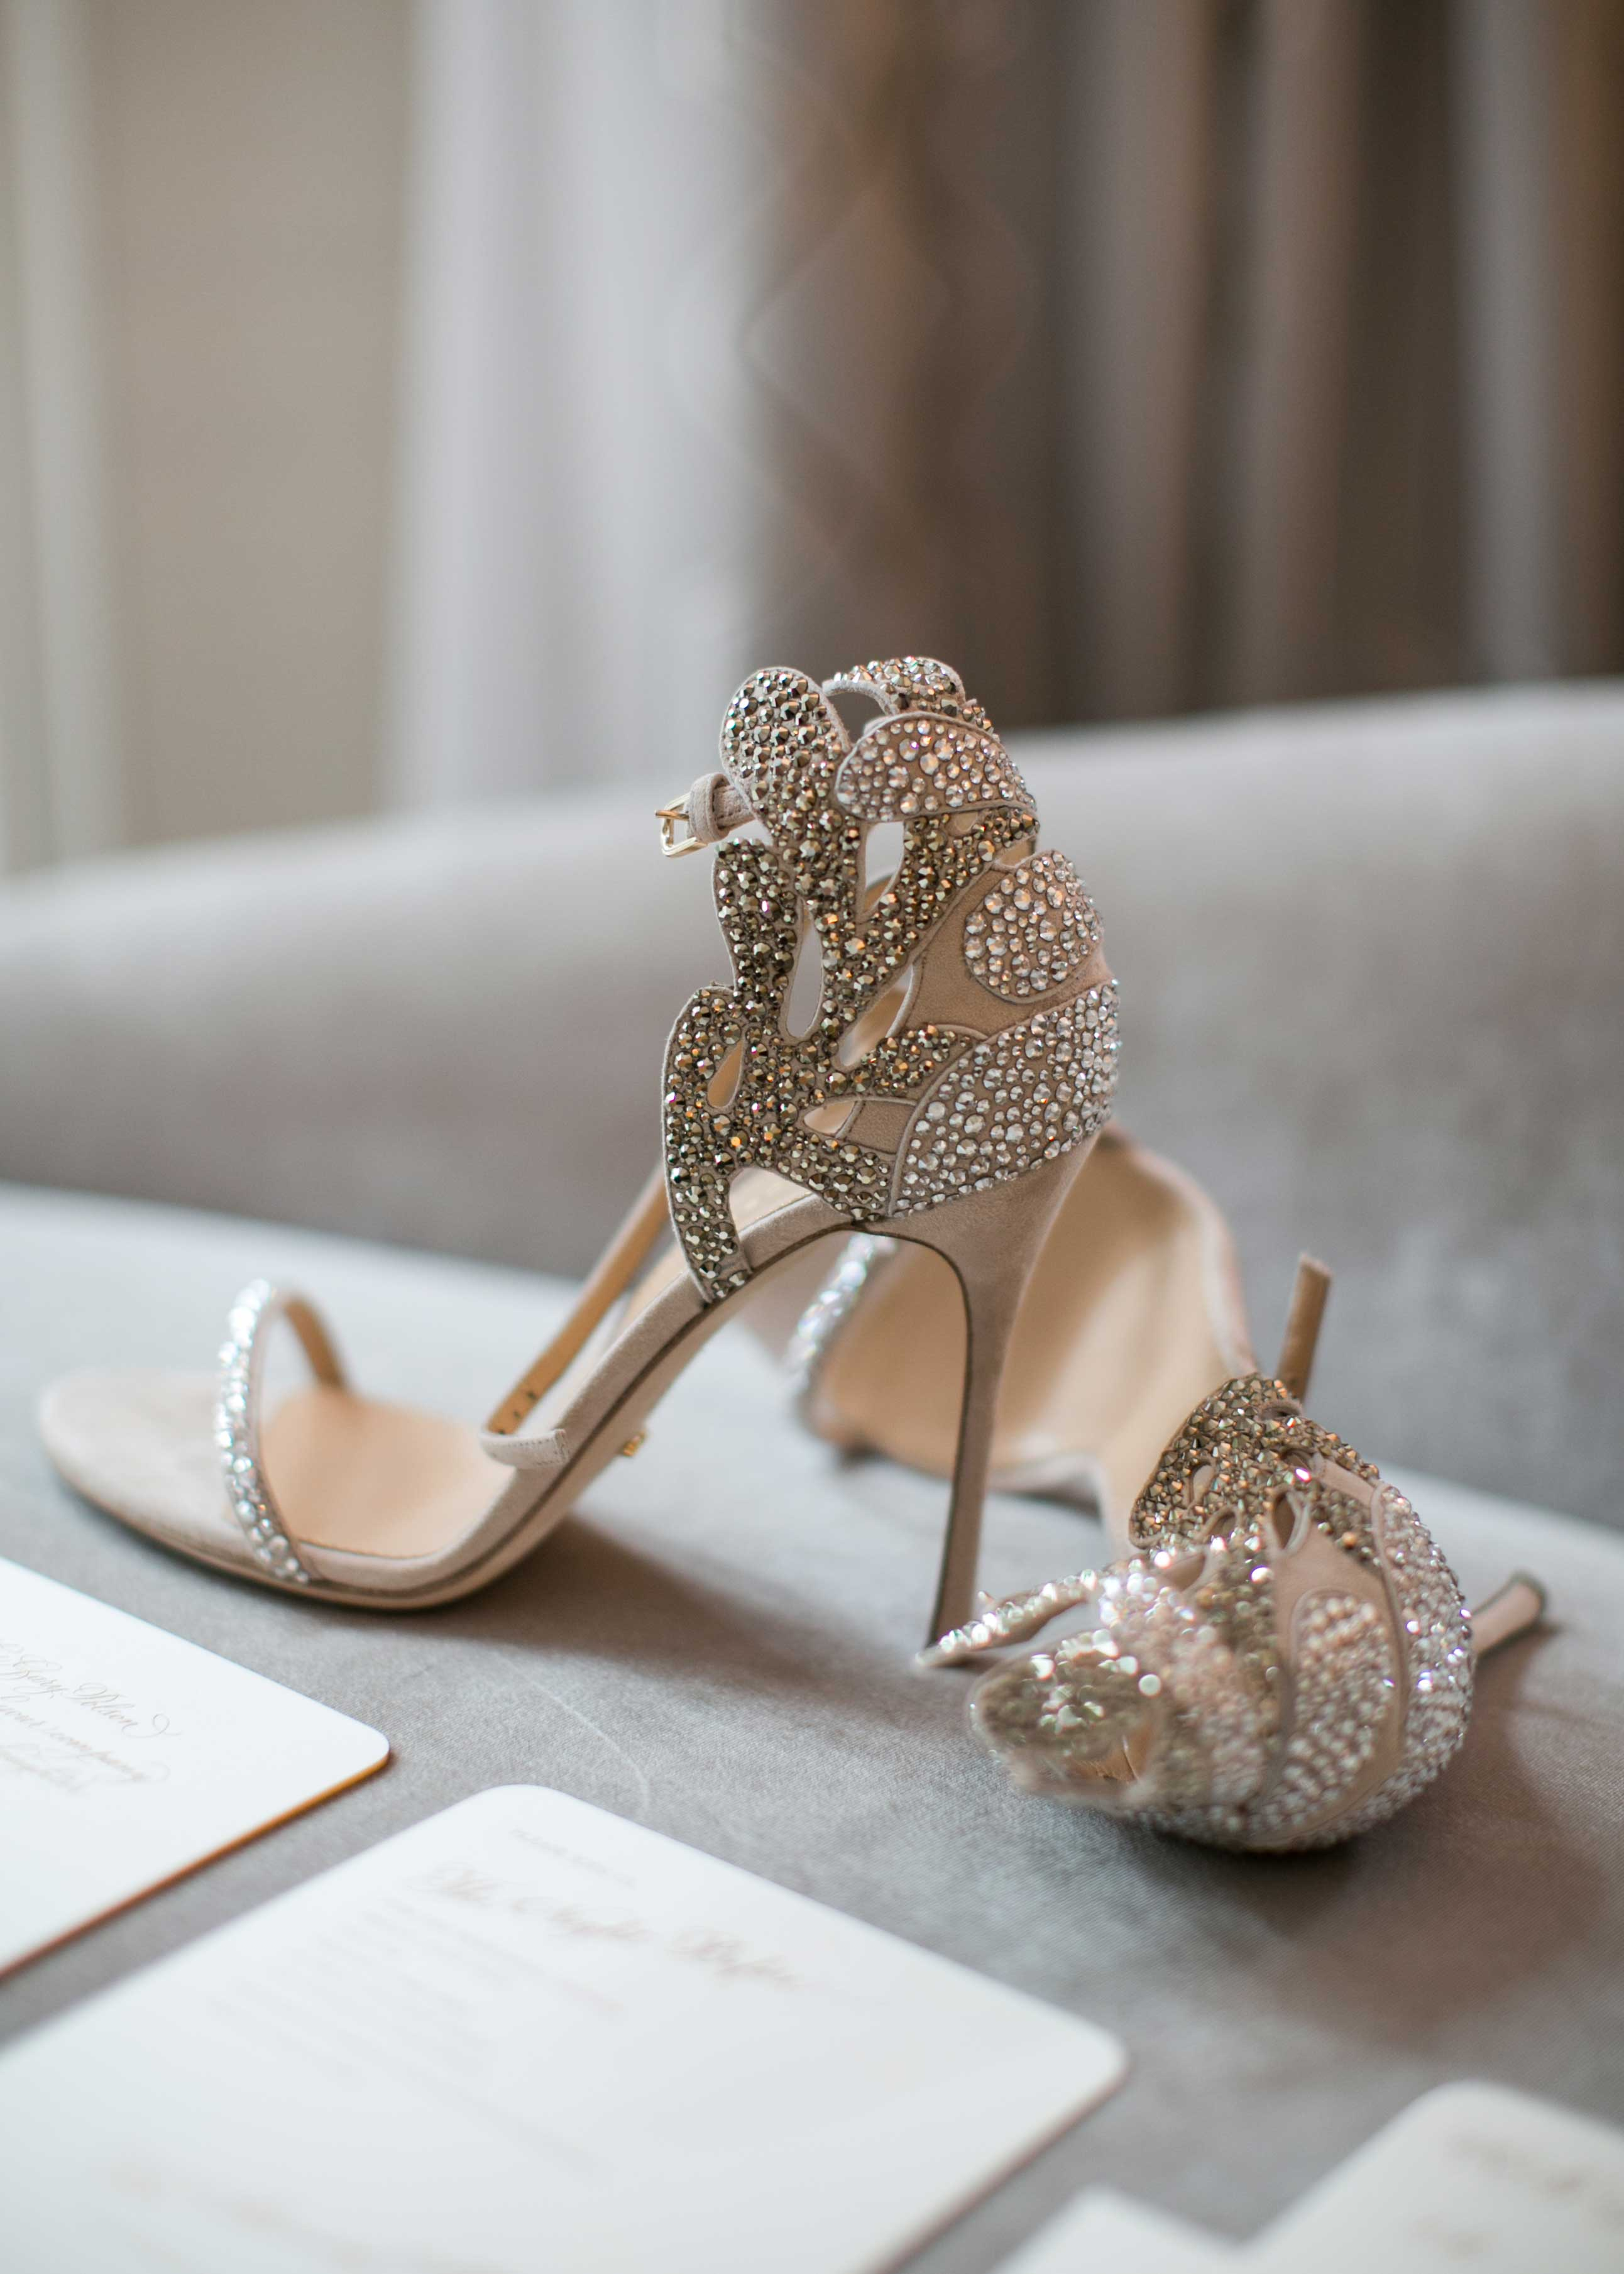 dfdcb41032bb Metallic Details for Dazzling Bridal Shoes - Inside Weddings